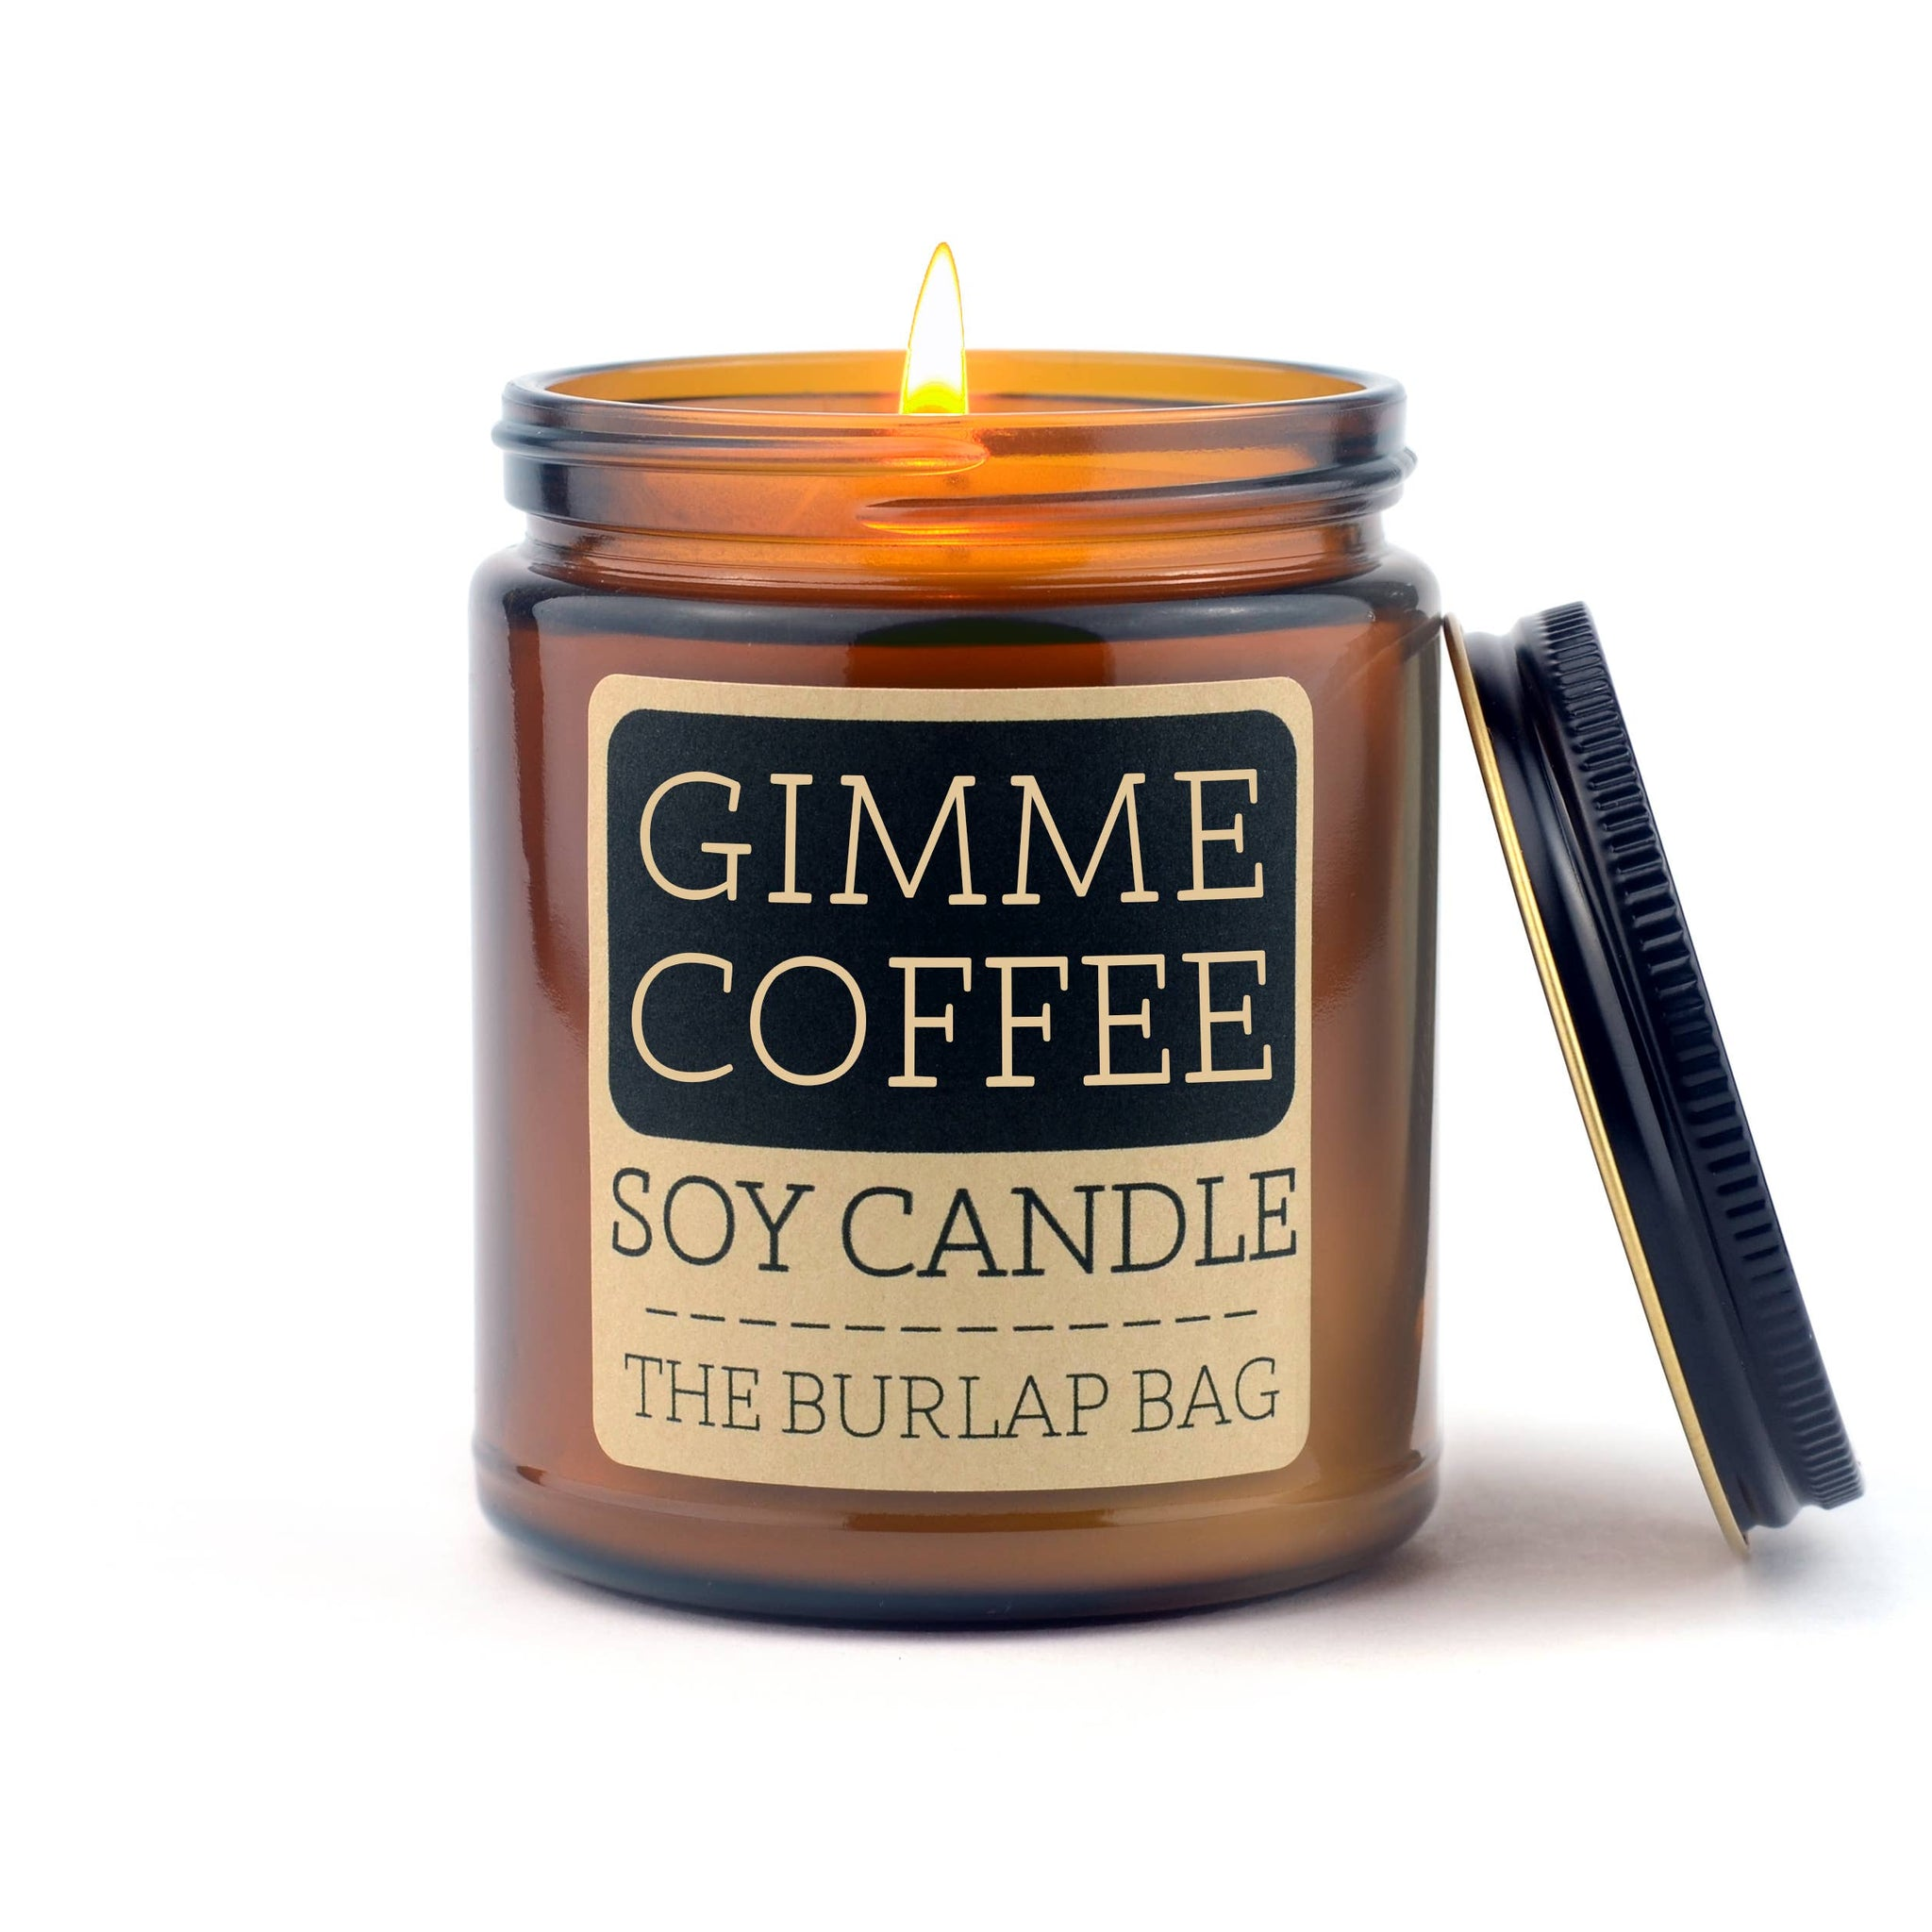 Gimme Coffee Soy Candle 9oz